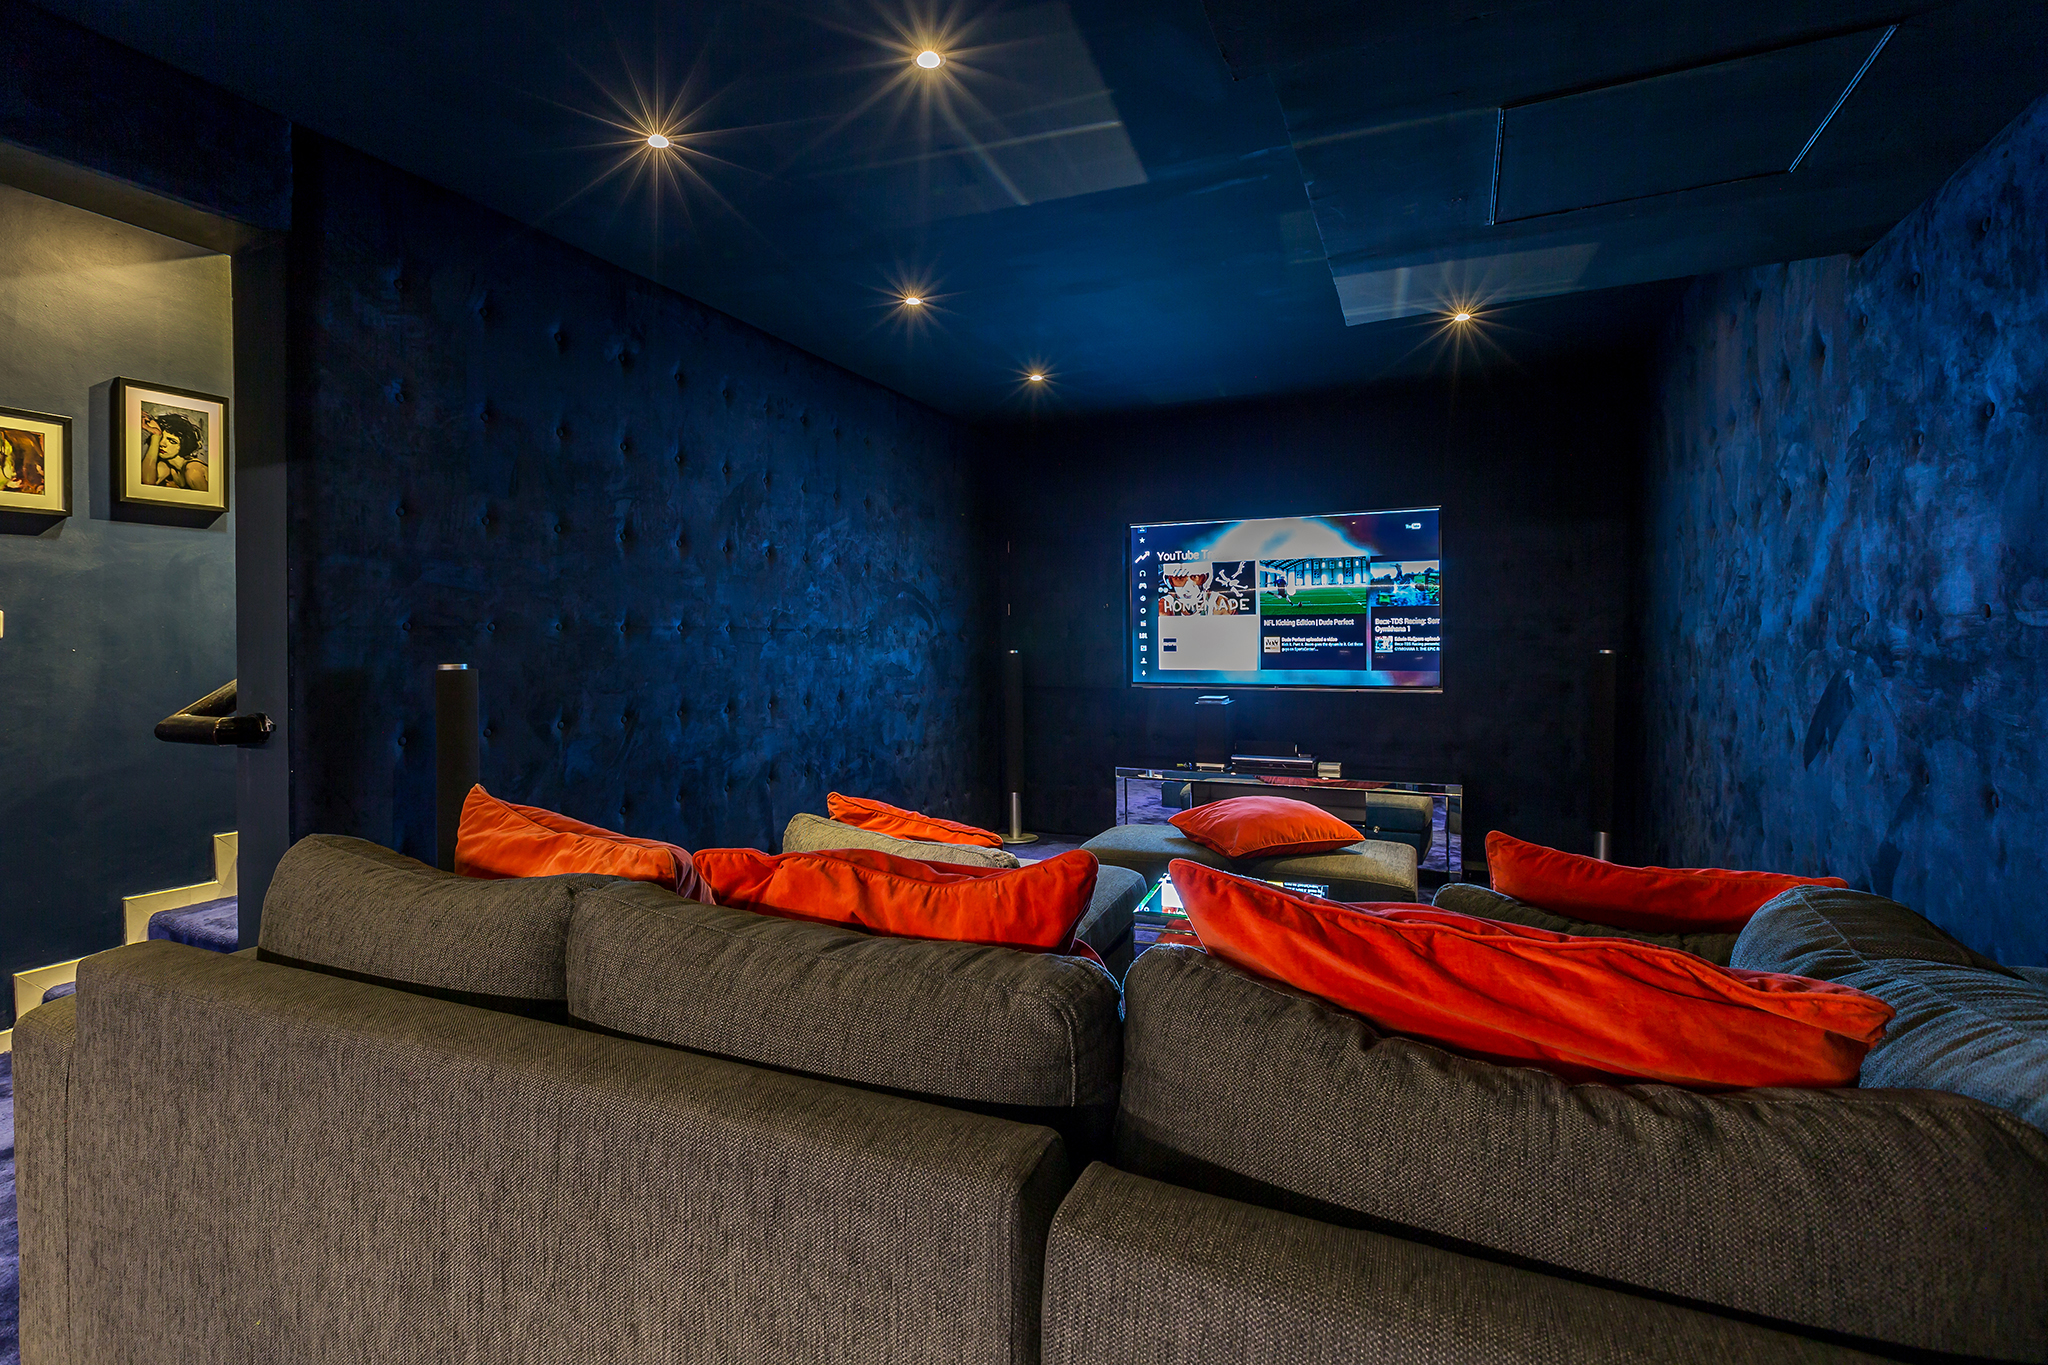 Subterranean Cinema Room, fully sound-proofed with large screen and surround sound